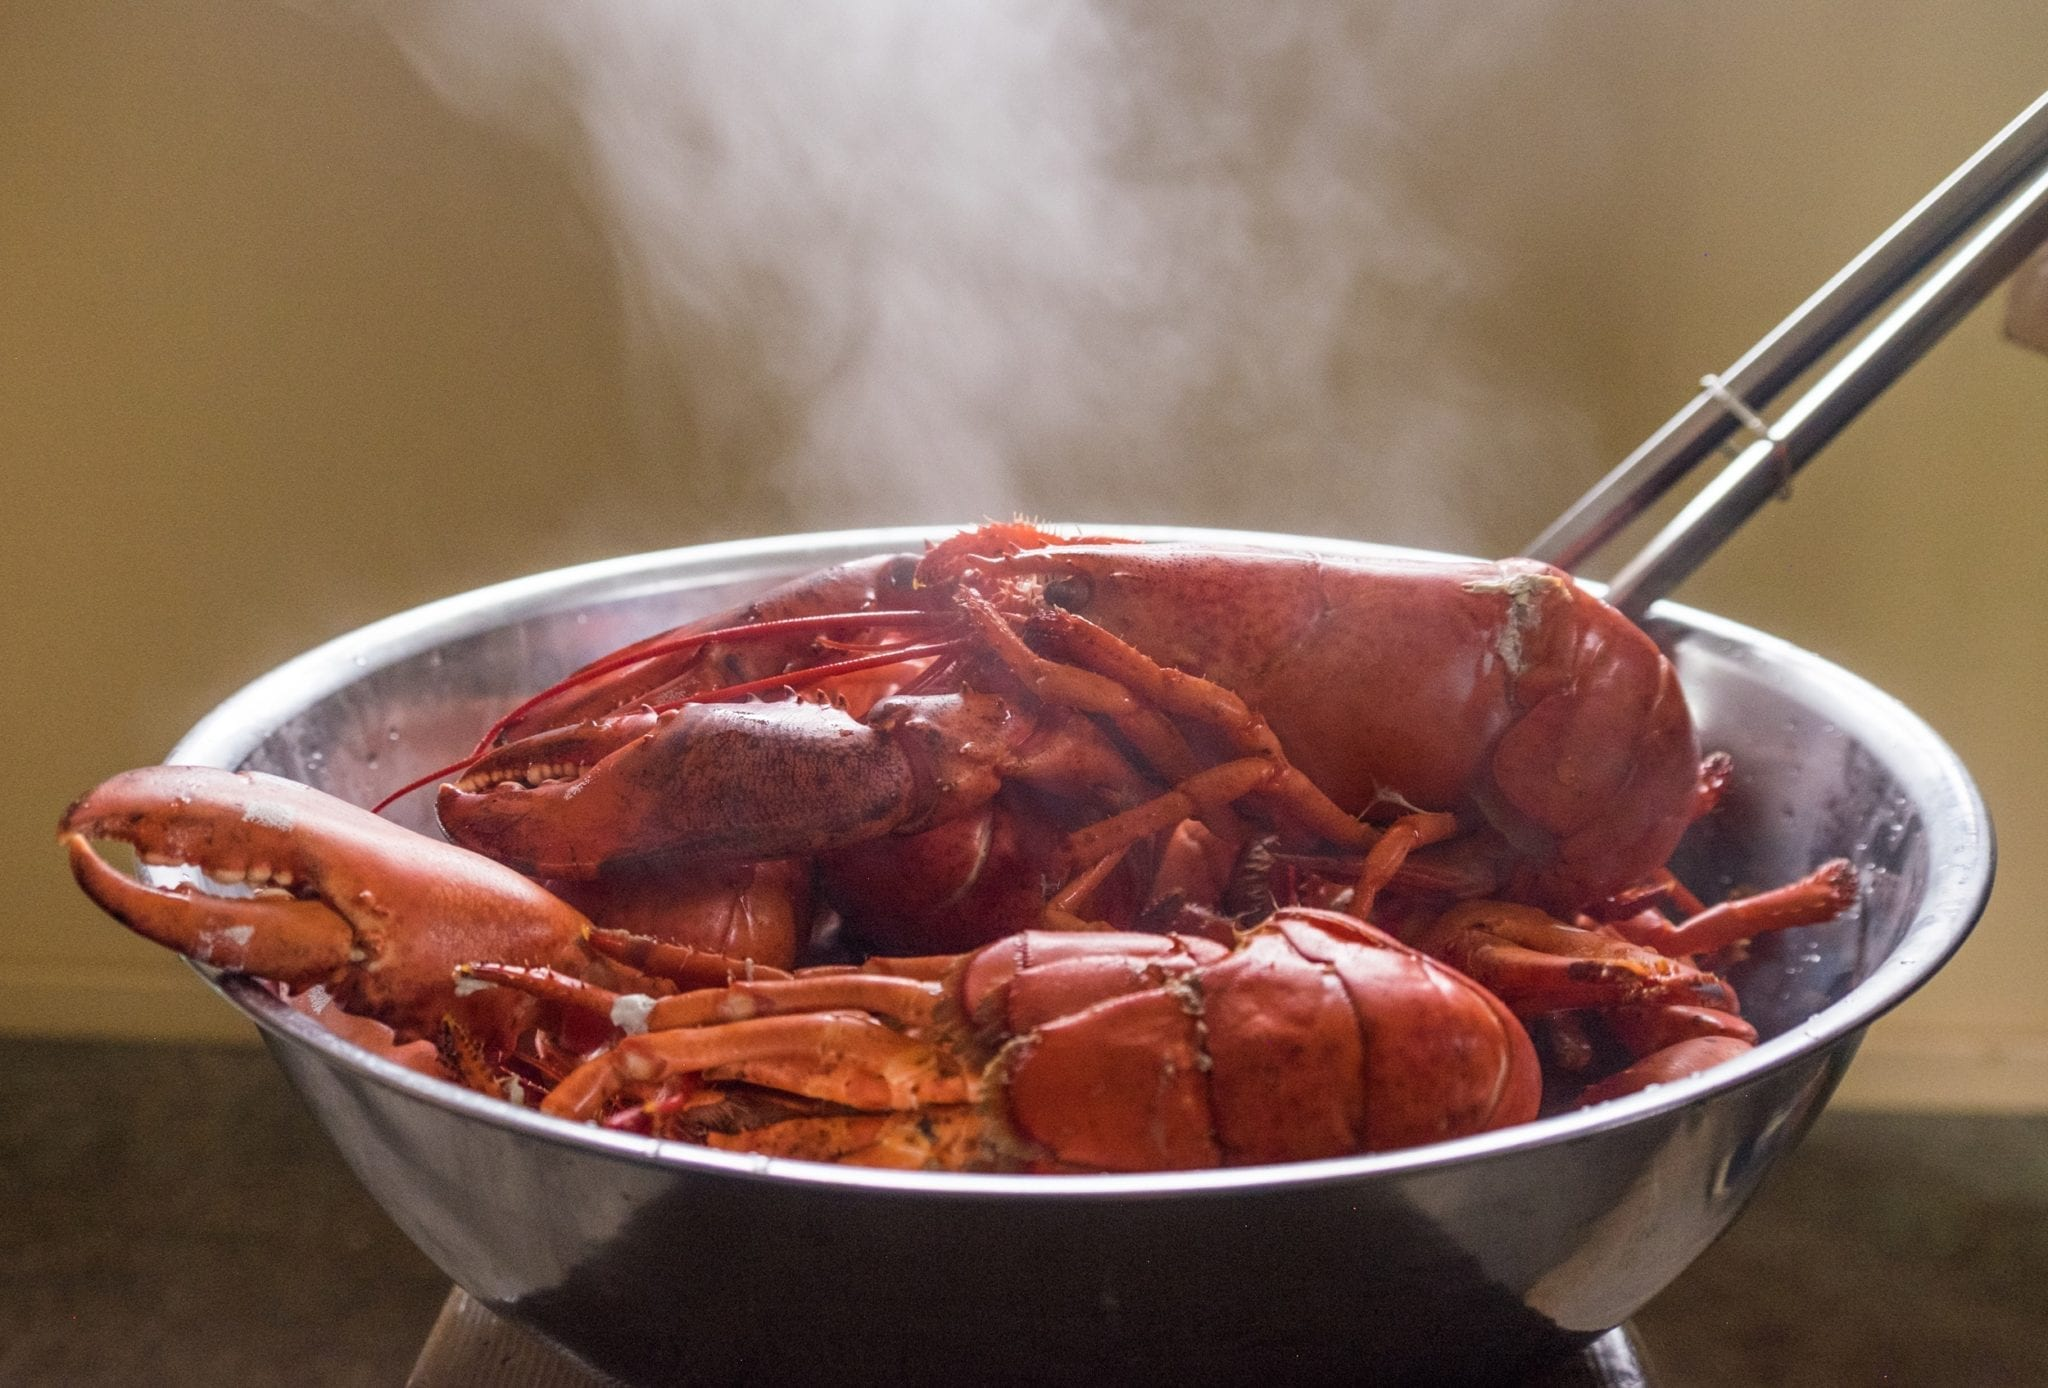 A pot full of bright red lobsters, steam rising up.